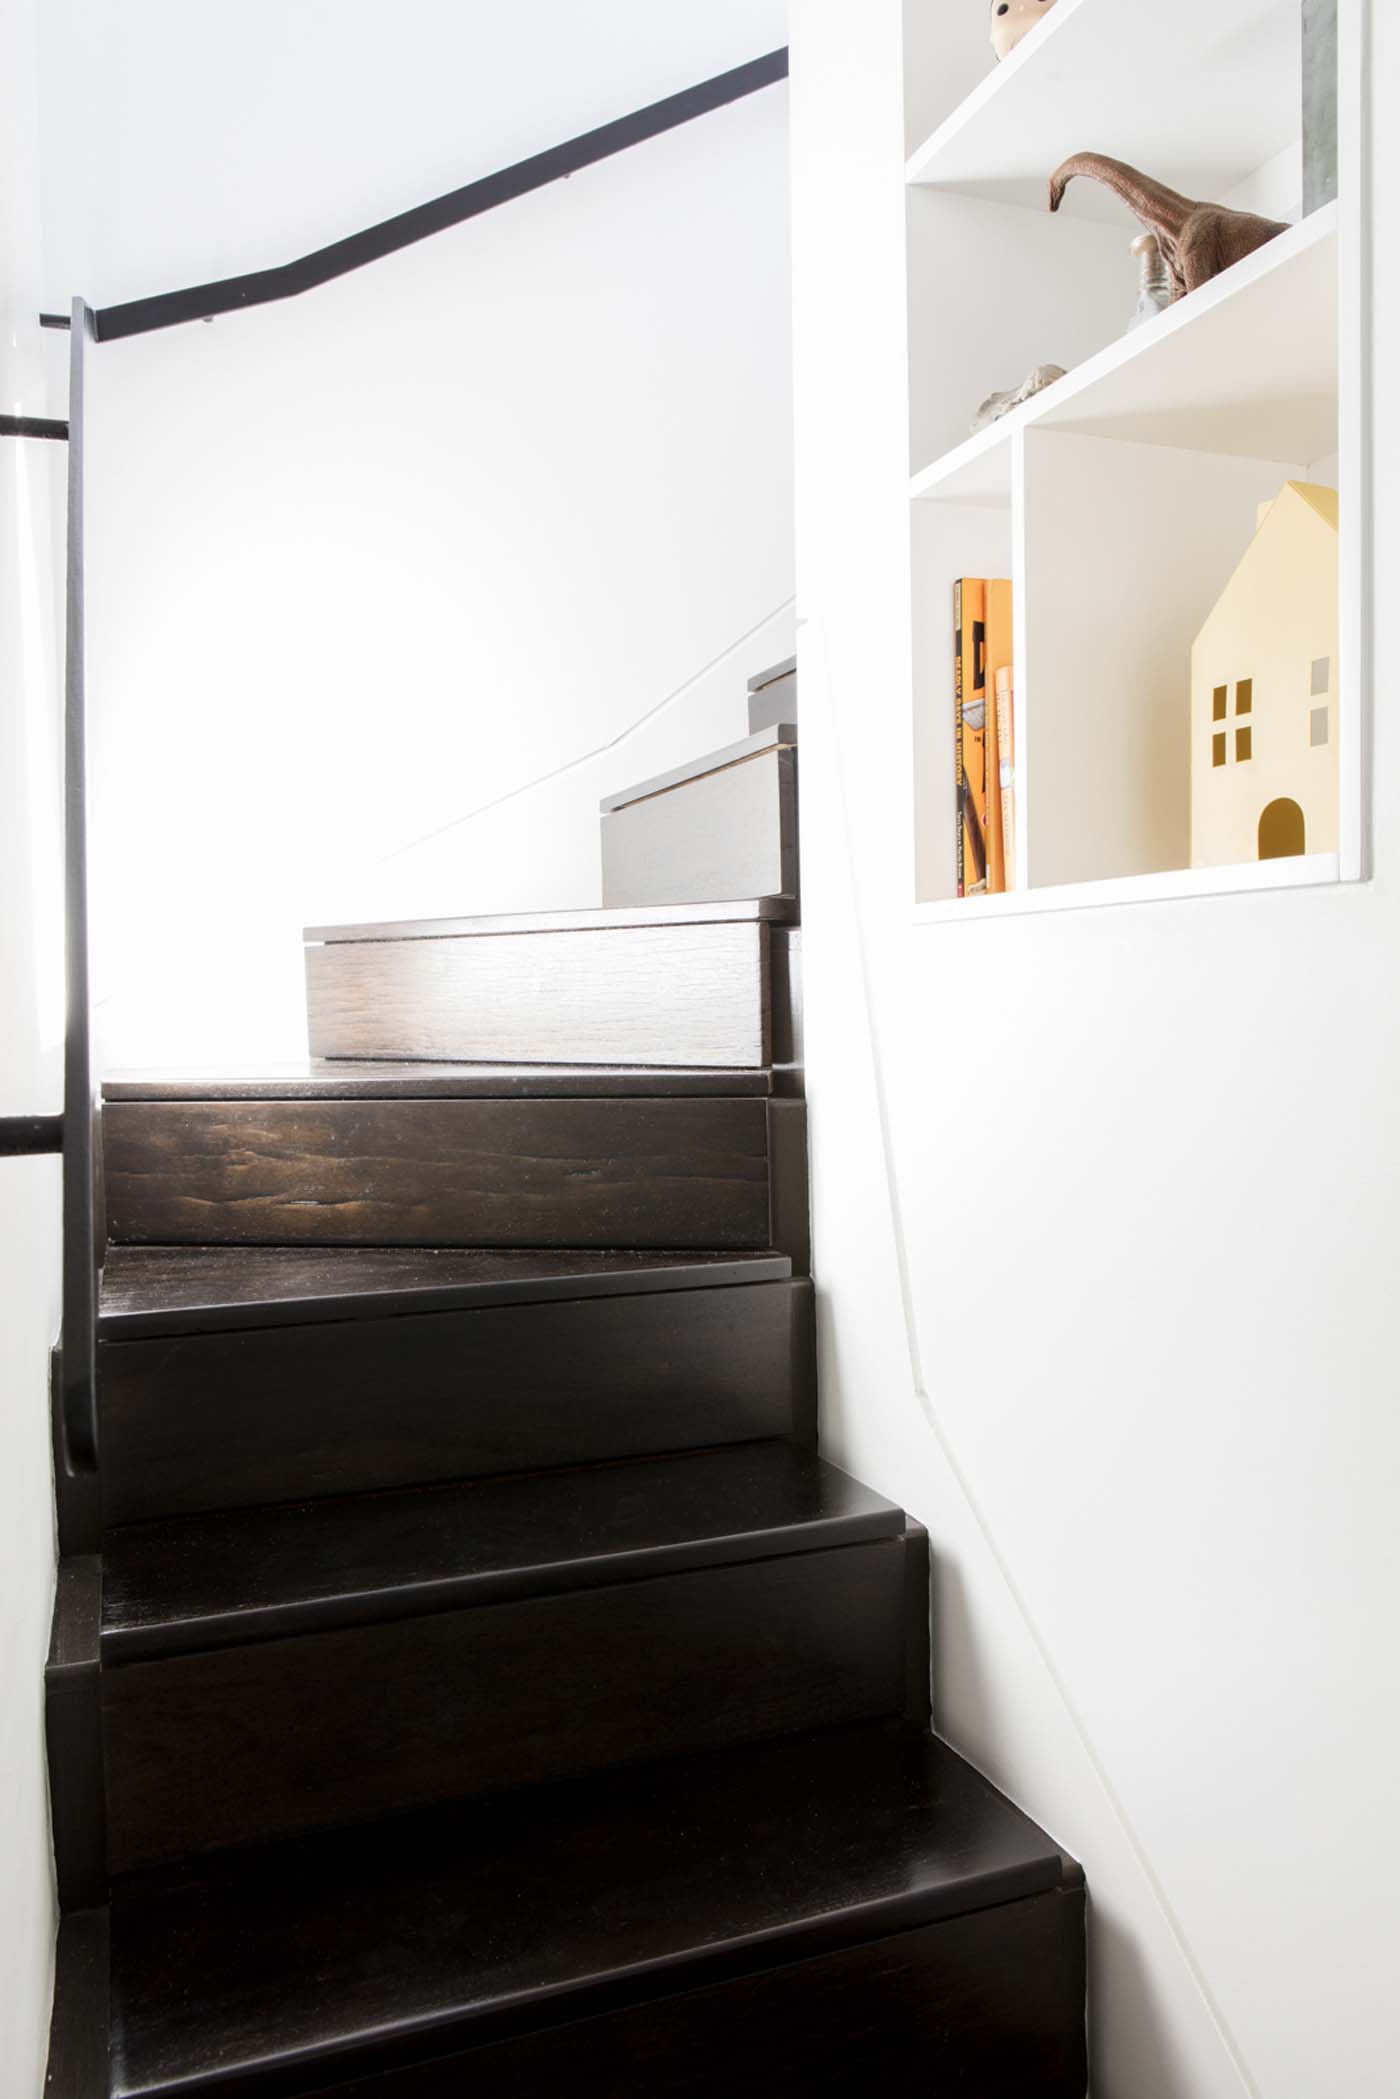 Sung Dobson house by Sam Crawford Architects, Sydney. Stairs lead to attic conversion.